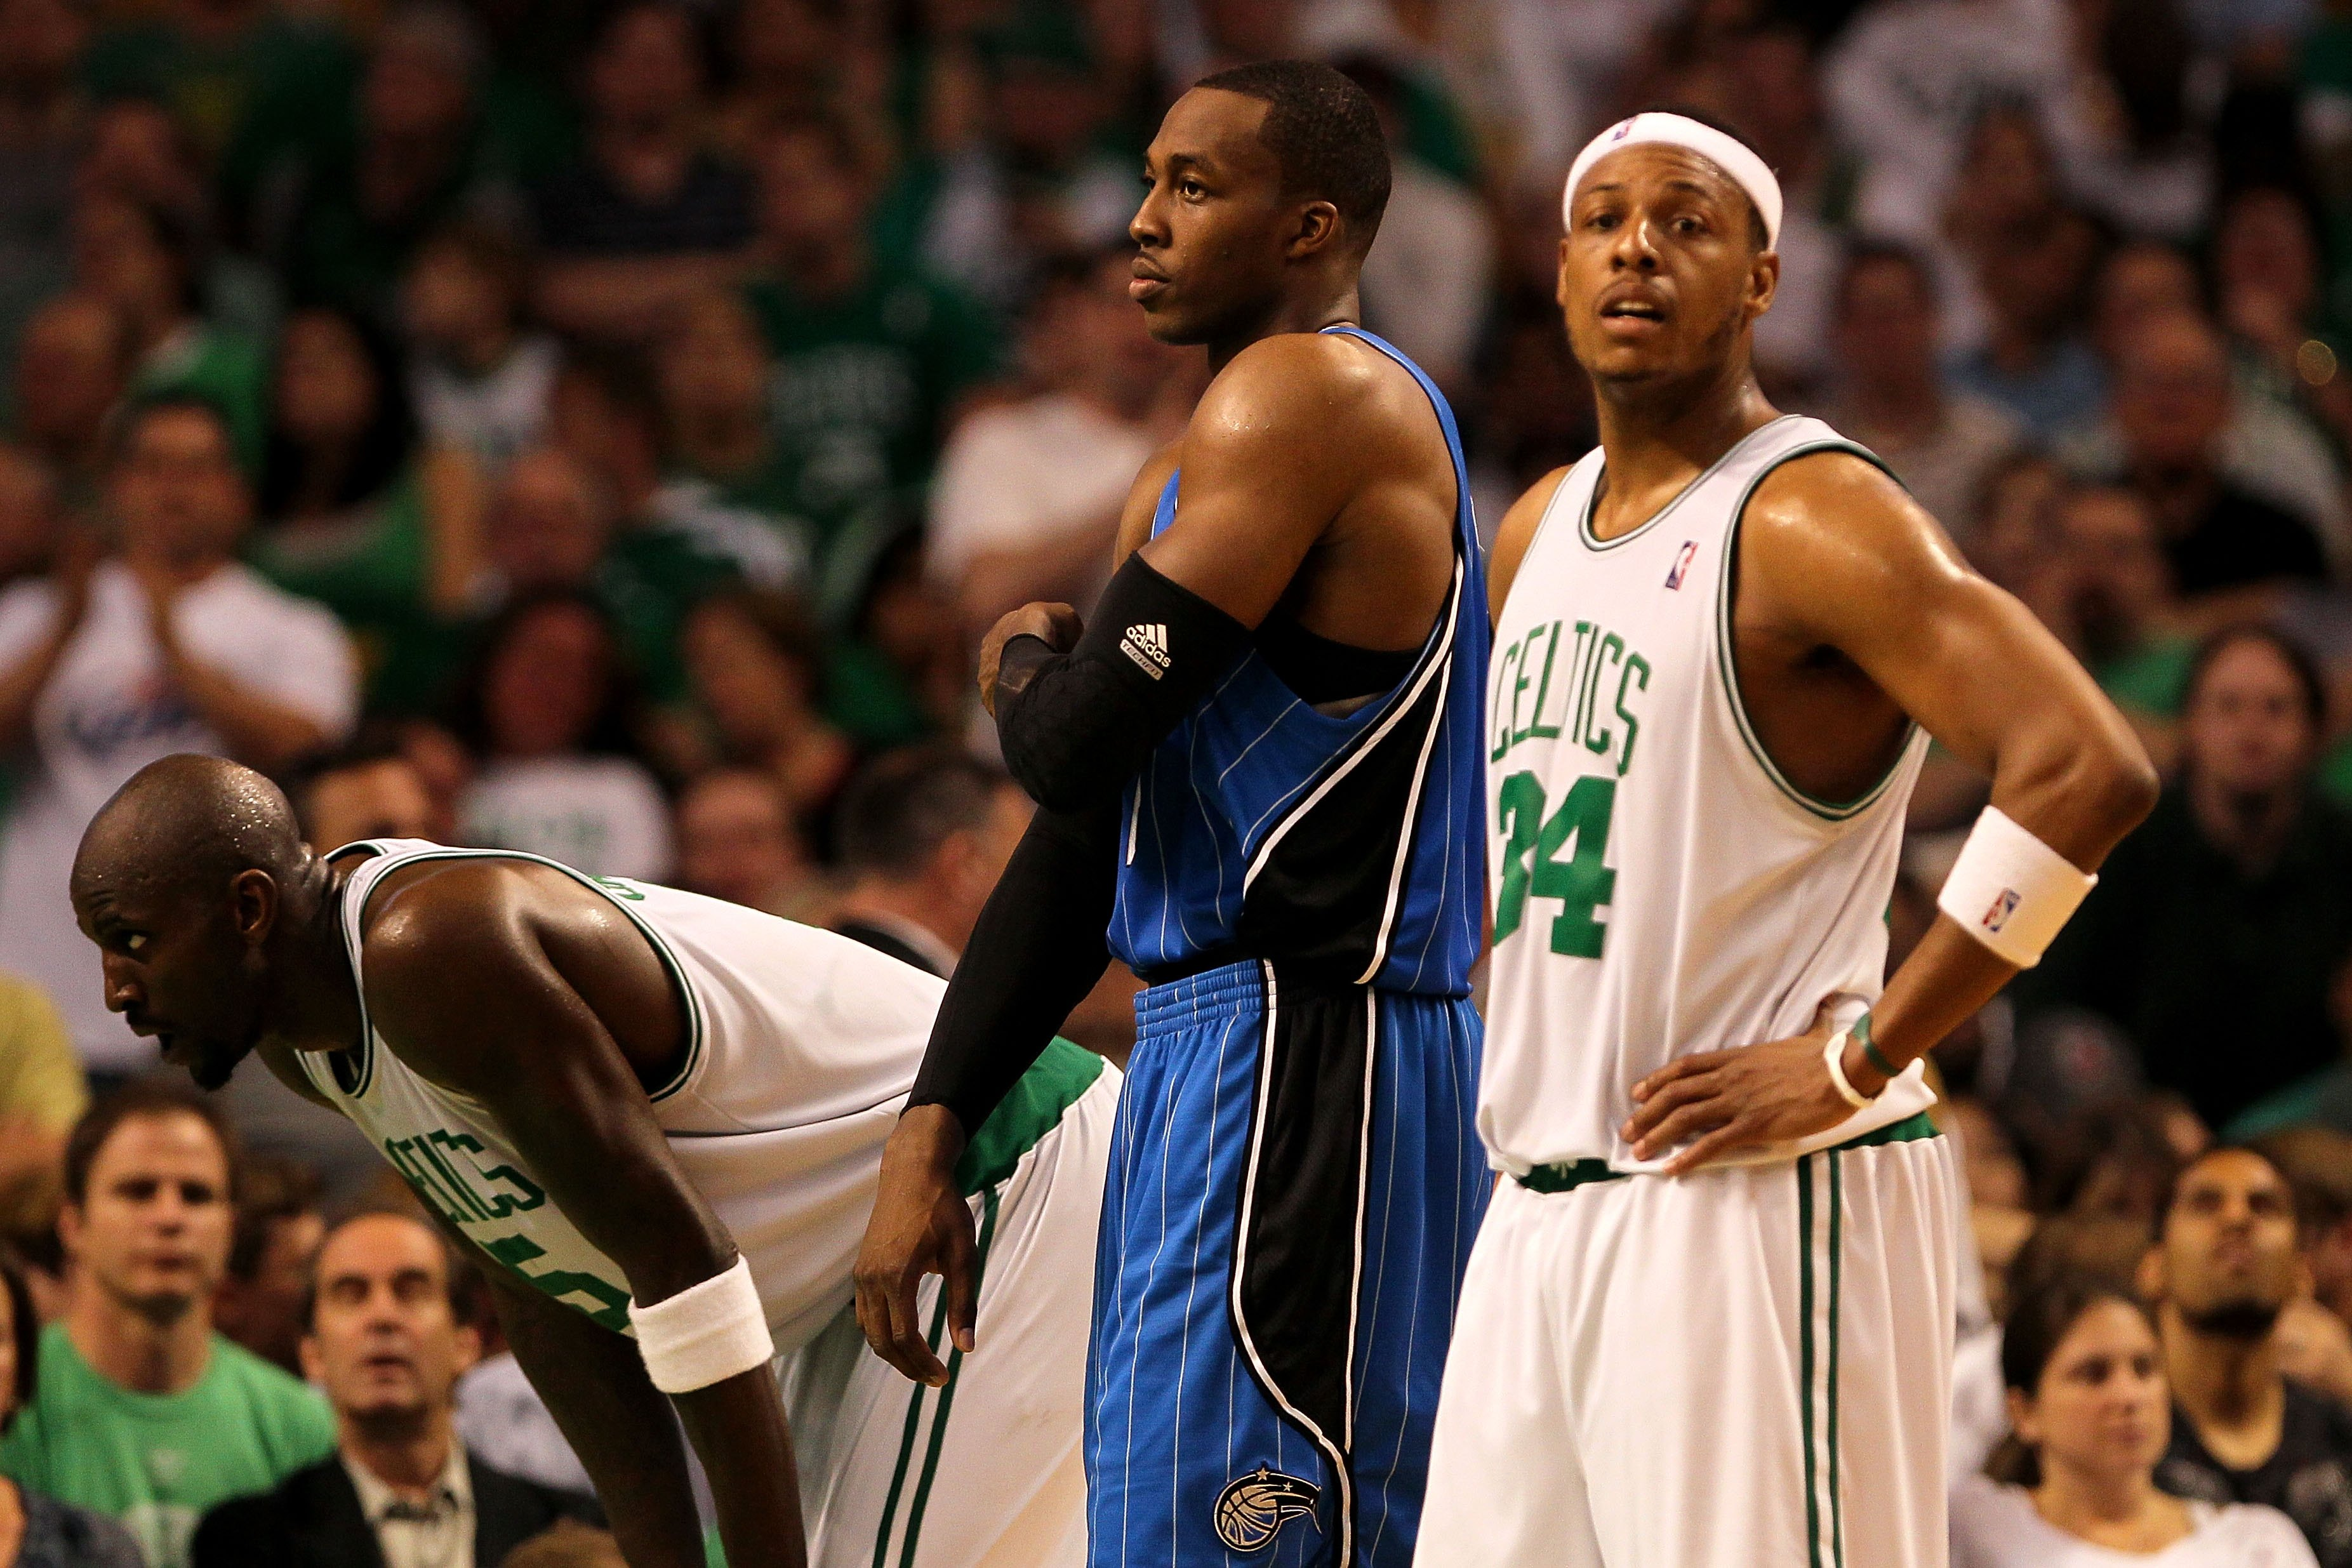 Dwight Howard is going to need a big game in order to stop the Boston Celtics